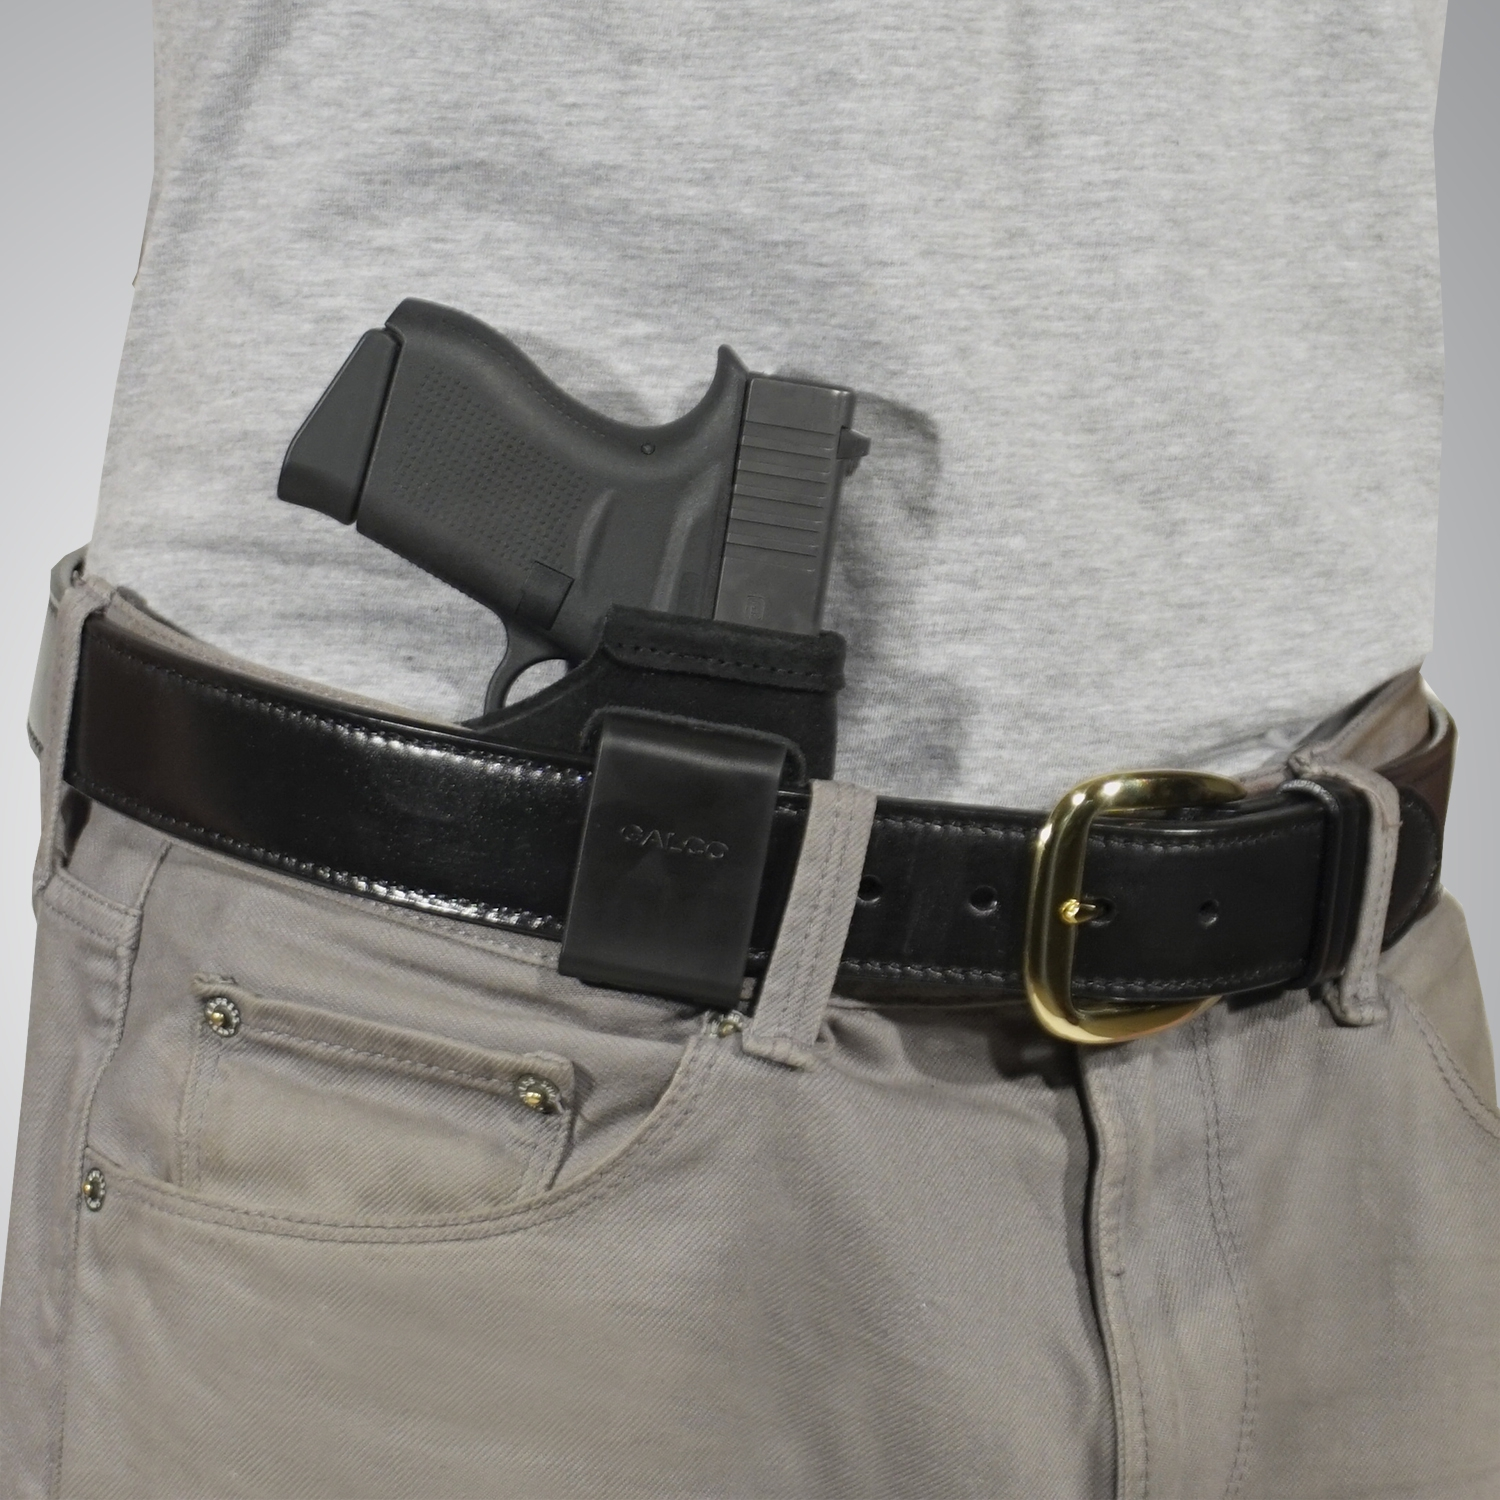 Best Appendix Carry Holsters